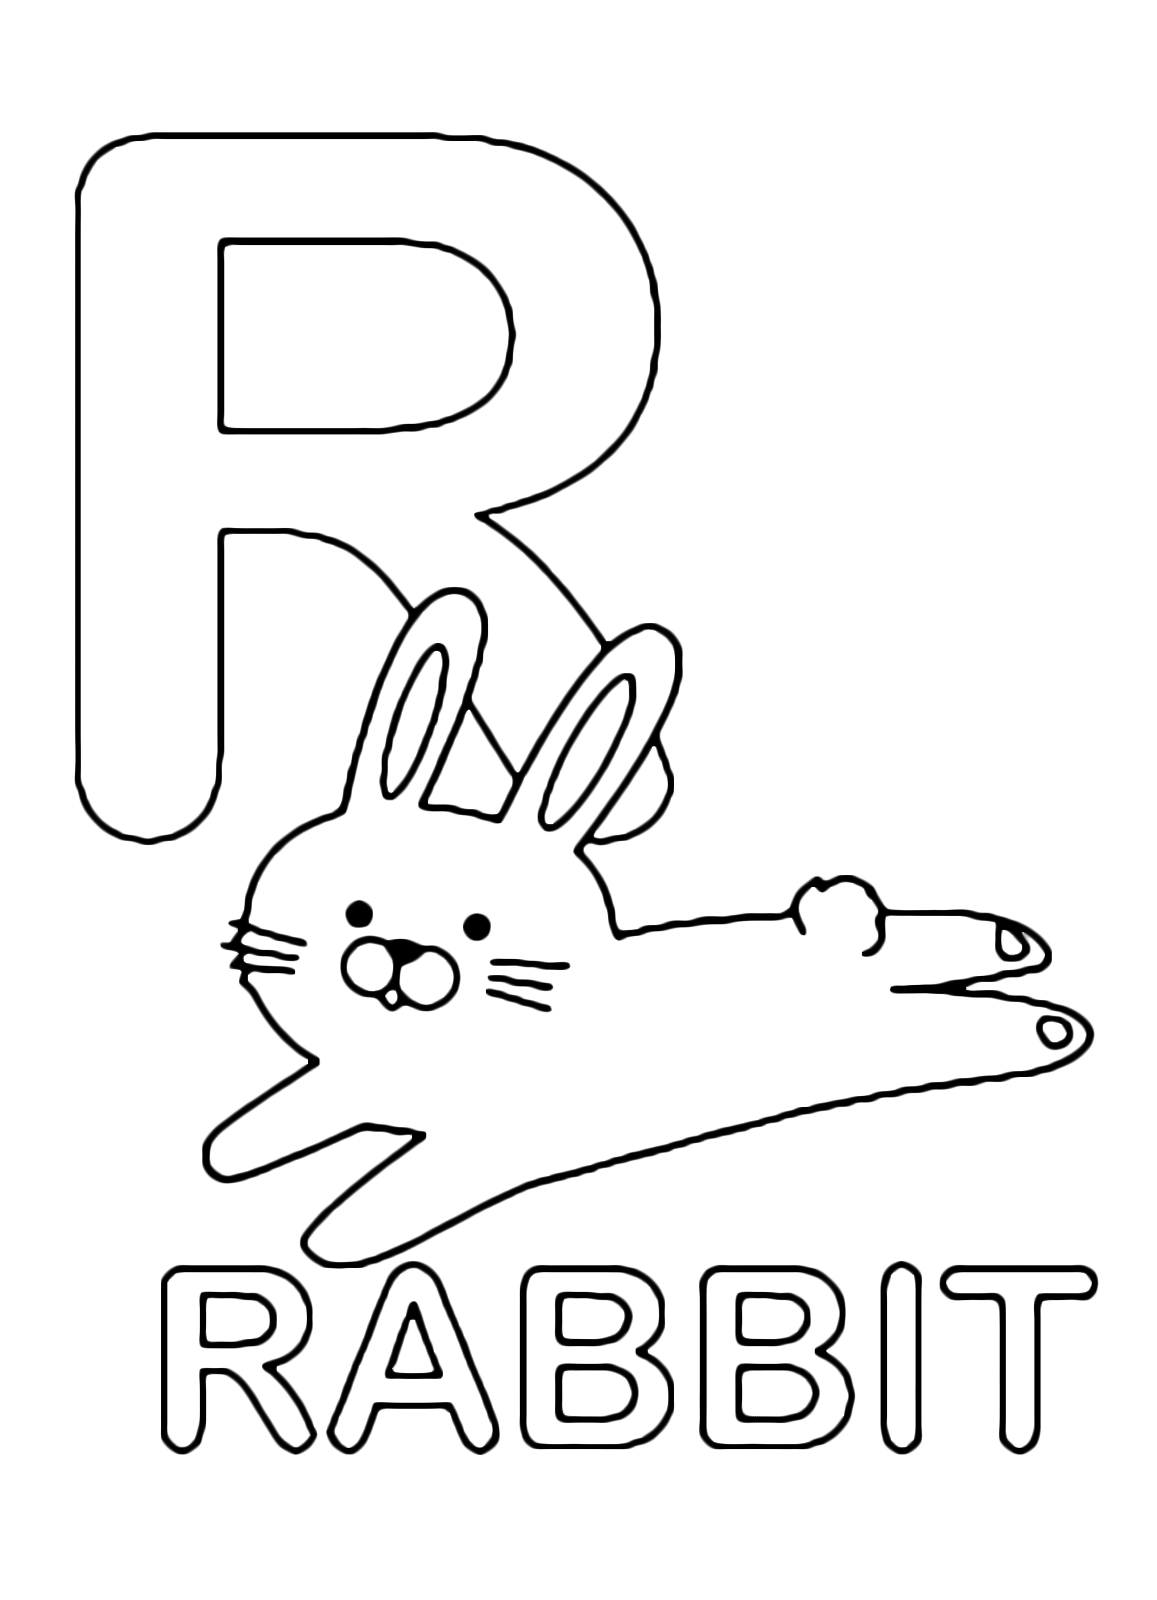 Letters and numbers - R for rabbit uppercase letter